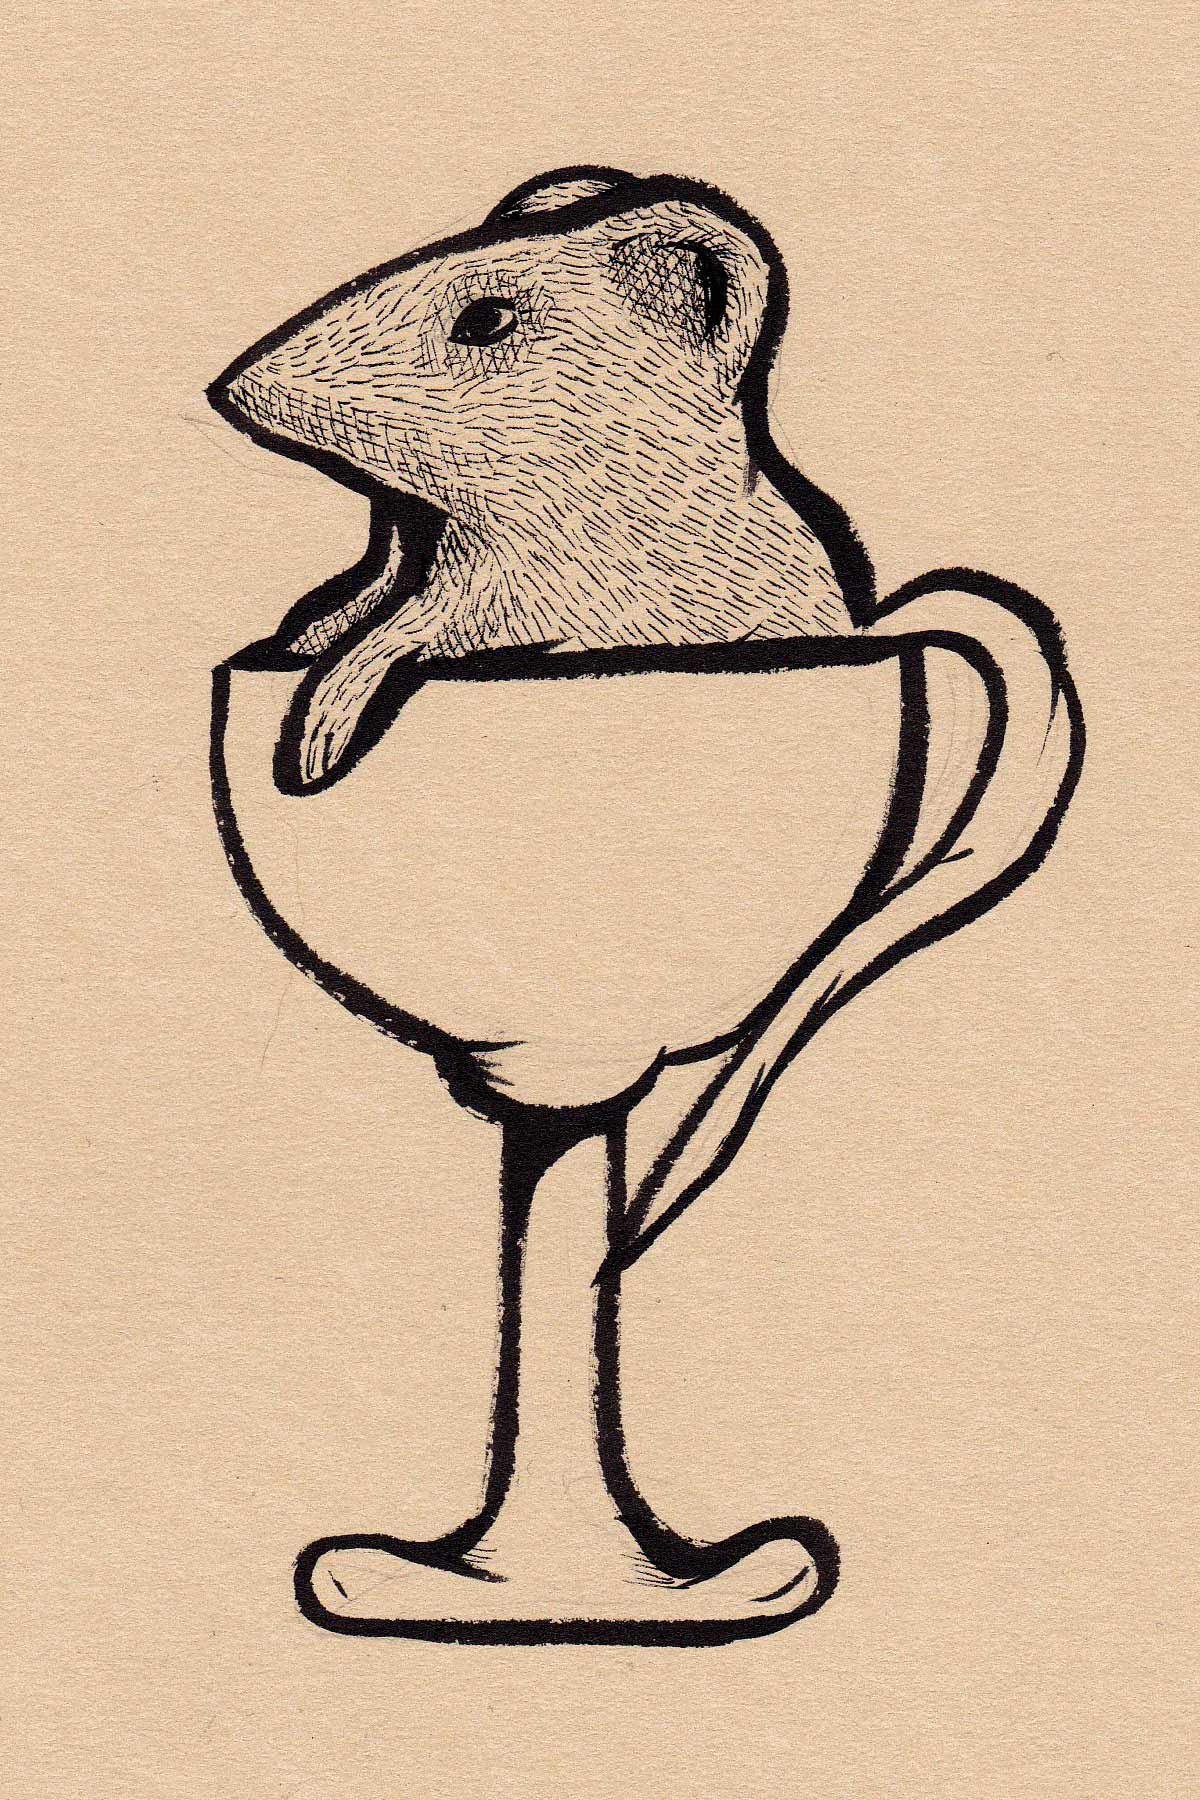 Mouse in a Cup original drawing.5x7,''matted at 8x10.''$45, signed.